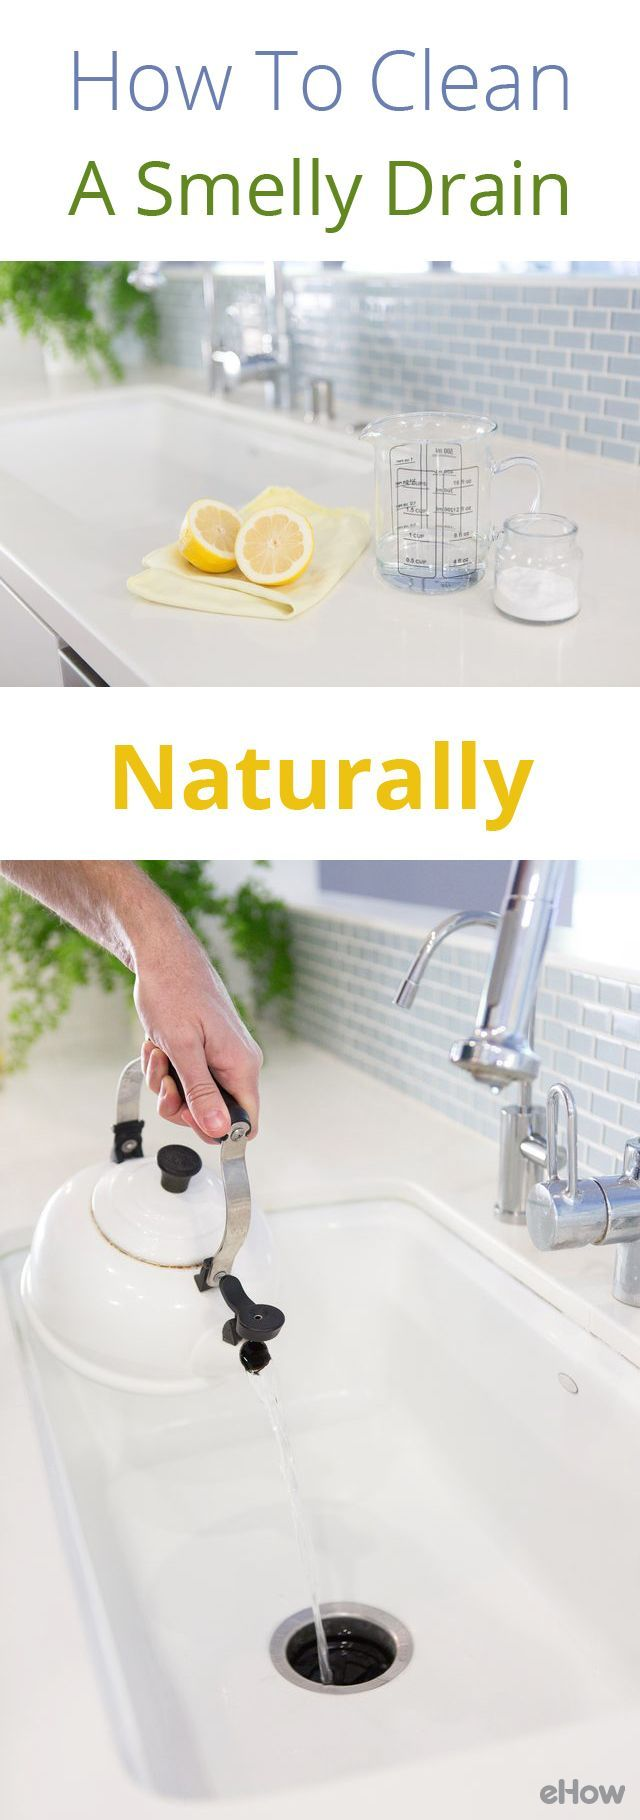 The odor from a dirty drain can permeate throughout your entire house. Bacteria grows on food that is stuck deep in the drain, creating a bad smell. Using natural cleaning products is a great way to keep your house clean and fresh while keeping your family safe and healthy. http://www.ehow.com/how_4836990_clean-smelly-drain.html?utm_source=pinterest.com&utm_medium=referral&utm_content=freestyle&utm_campaign=fanpage